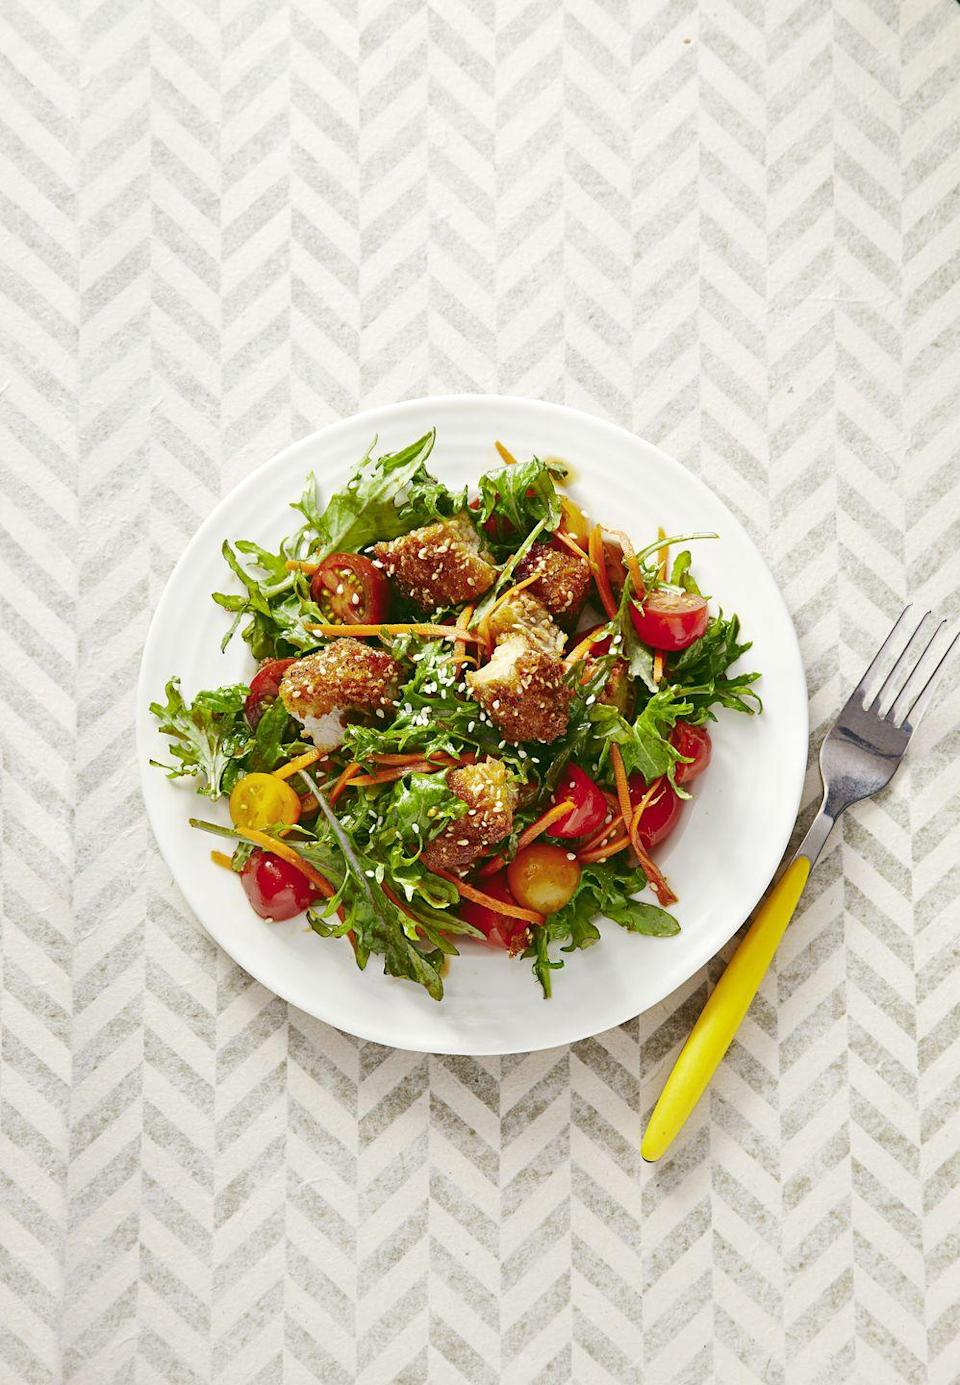 """<p>""""Everything in moderation"""" means you totally should have that pan-fried sesame pork ... but add some fresh salad to your plate too. </p><p><em><a href=""""https://www.goodhousekeeping.com/food-recipes/a31838/crispy-sesame-pork-recipe-2-ghk0415/"""" rel=""""nofollow noopener"""" target=""""_blank"""" data-ylk=""""slk:Get the recipe for Crispy Sesame Pork »"""" class=""""link rapid-noclick-resp"""">Get the recipe for Crispy Sesame Pork »</a></em> </p>"""